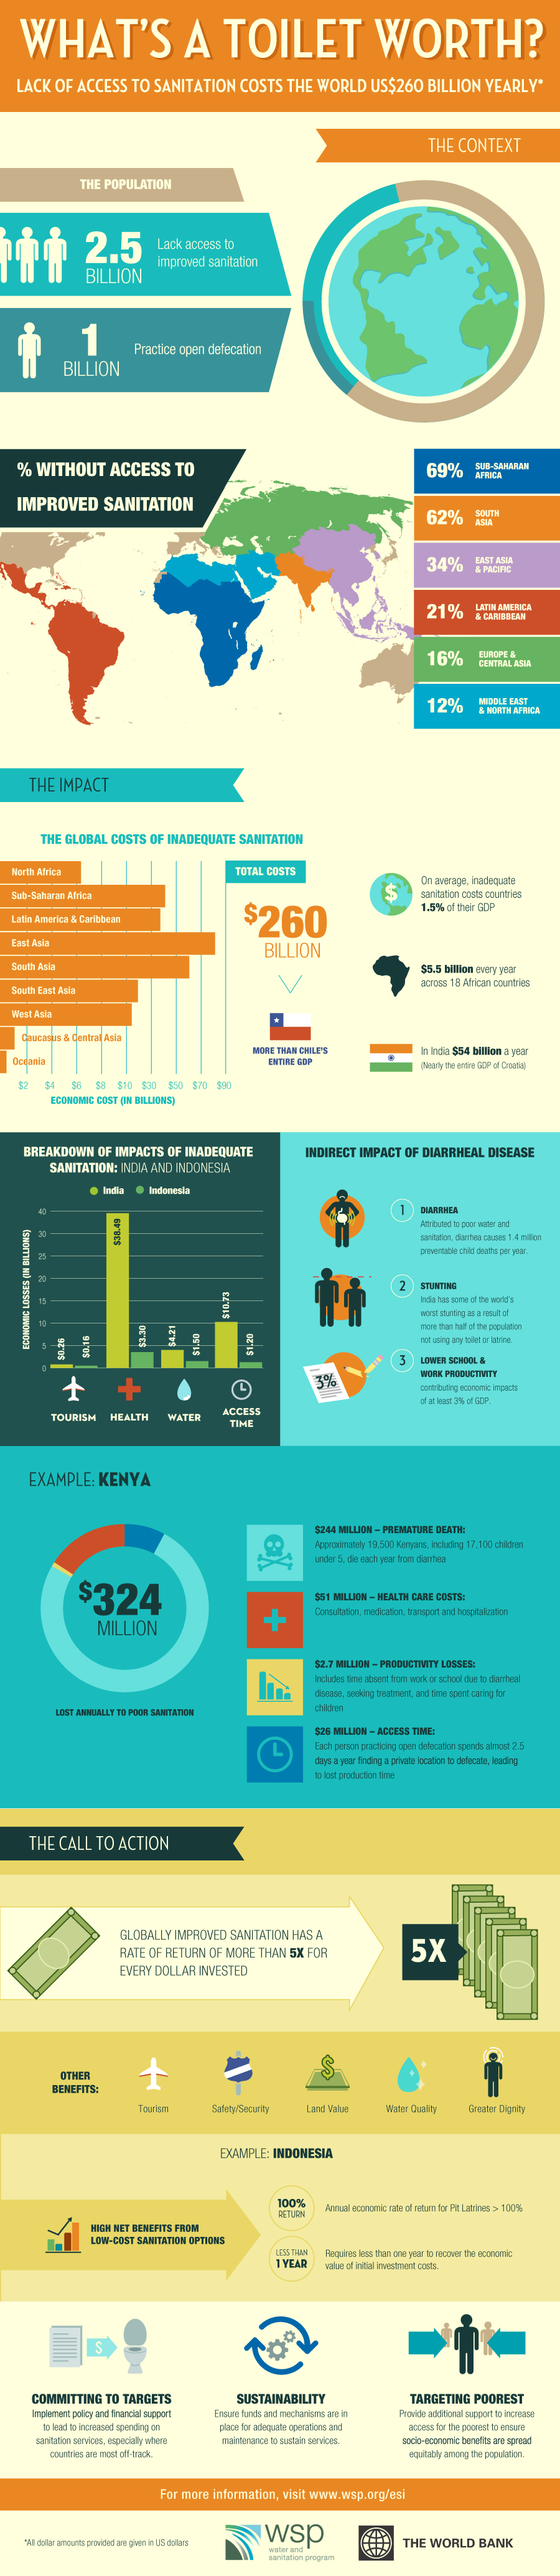 The Catastrophic Cost and Impact of Inadequate Sanitation - Infographic